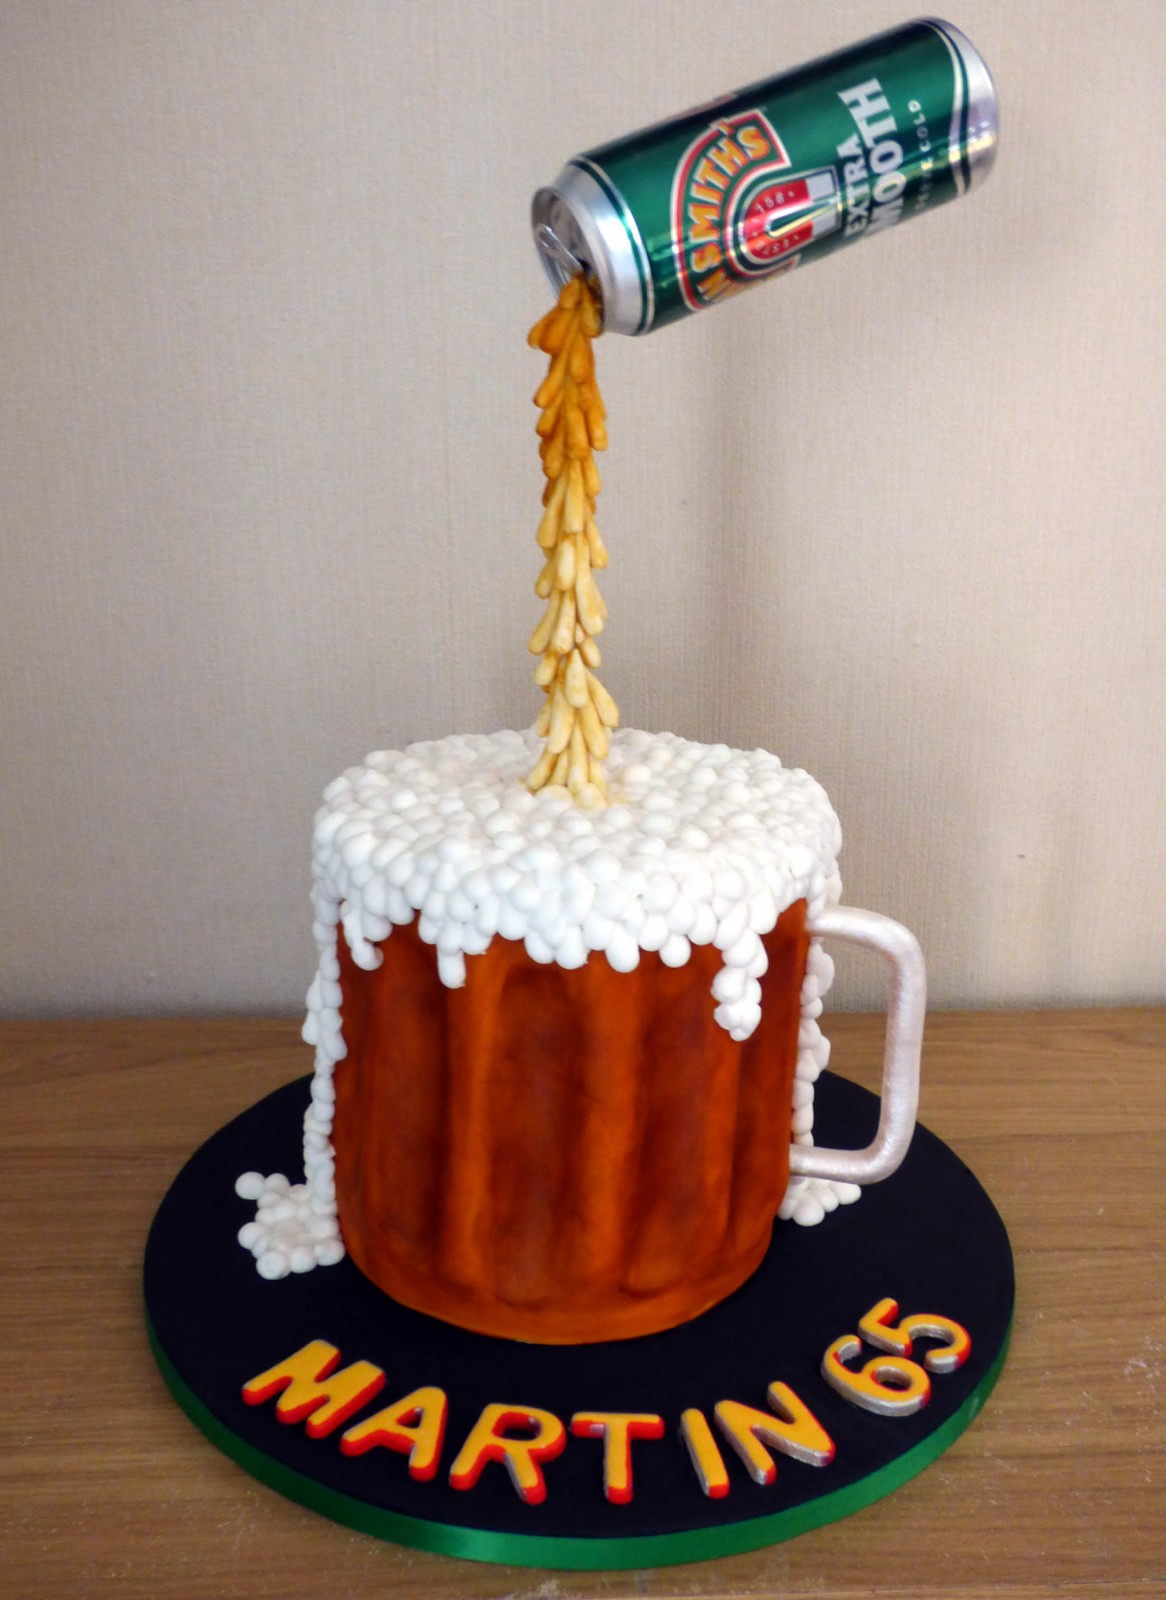 How To Transport A Beer Can Cake